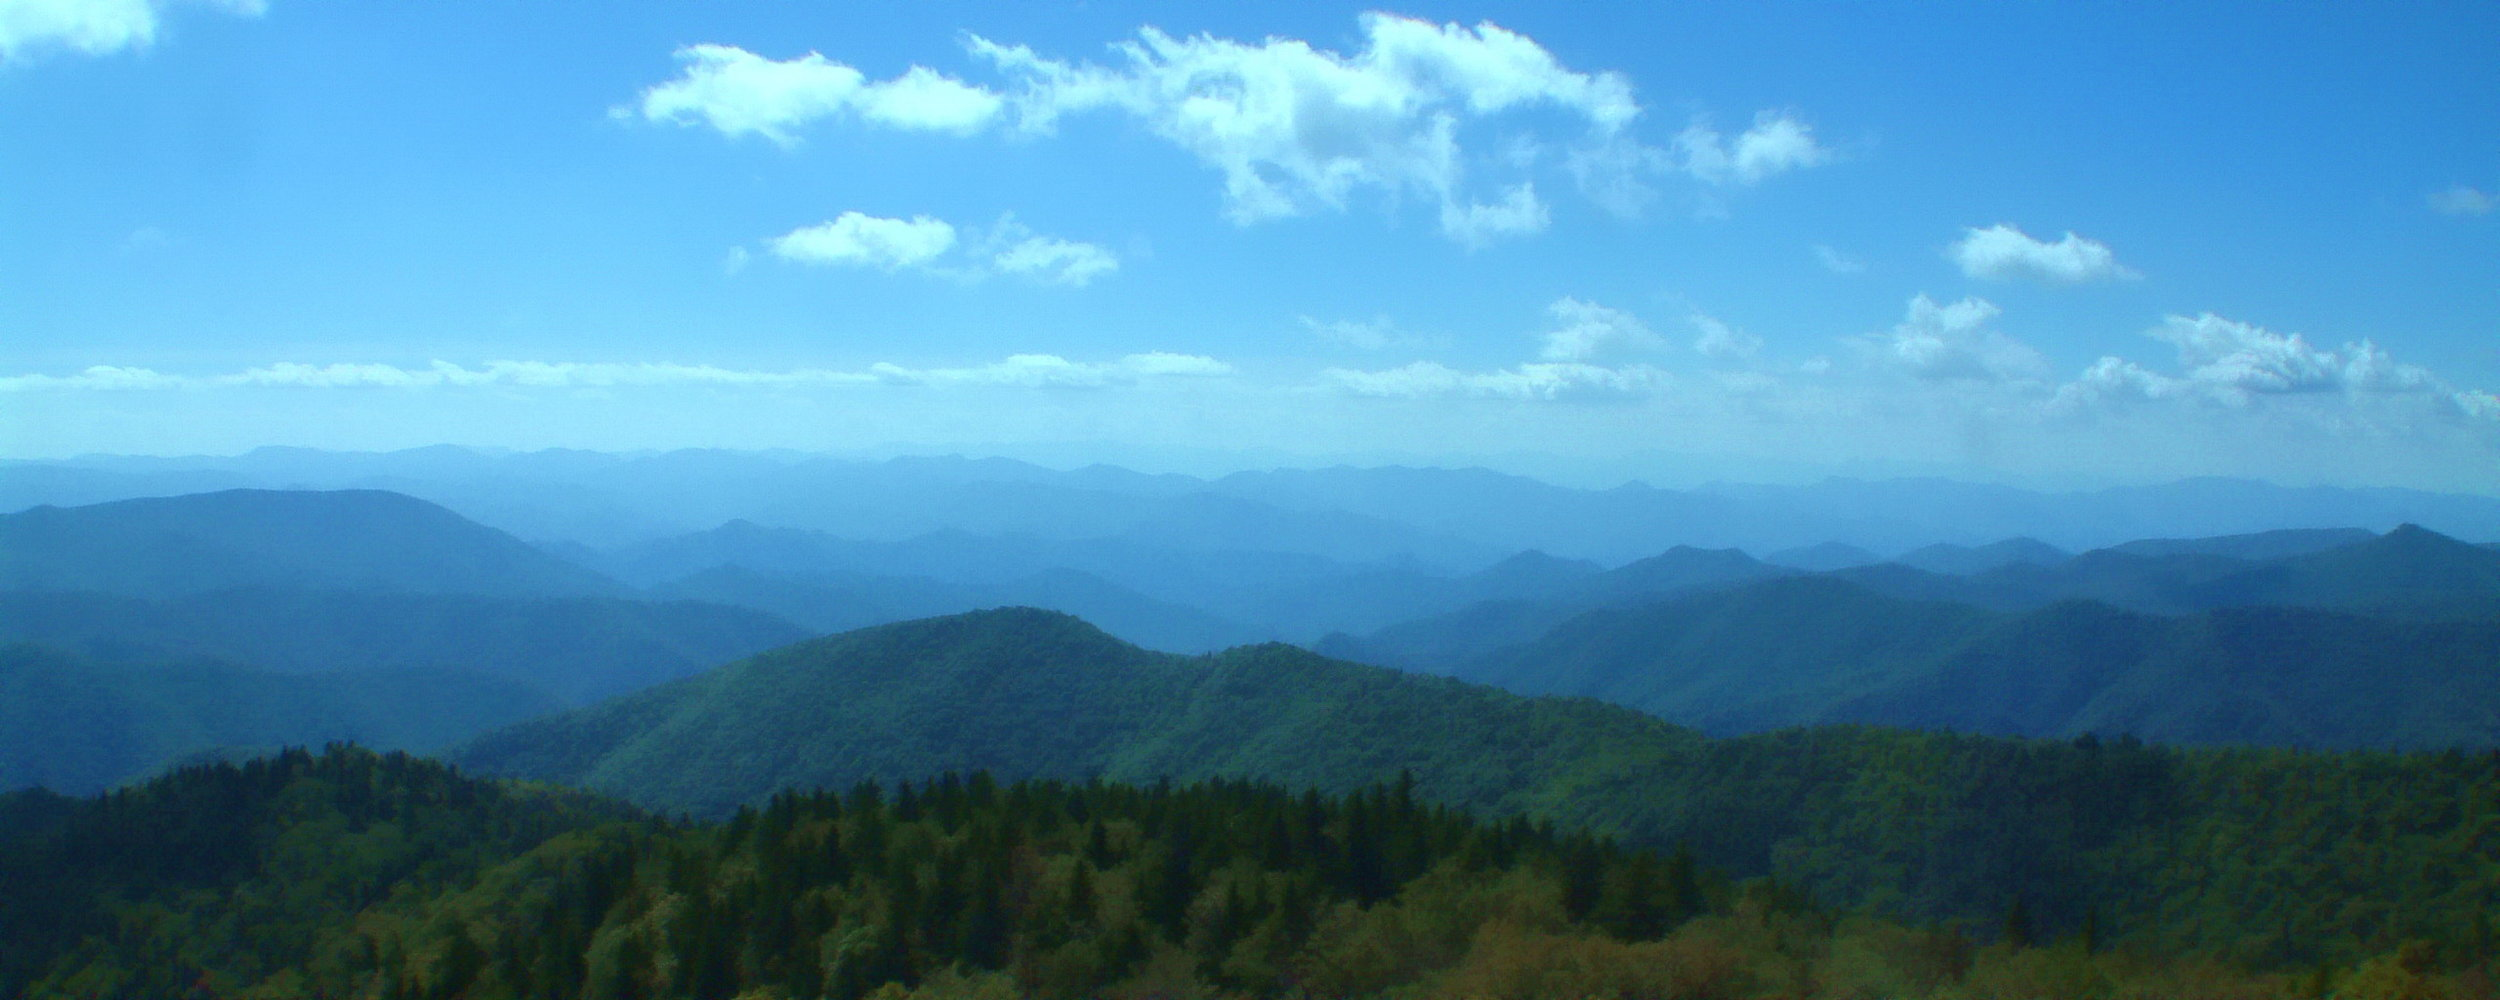 Blue Ridge Mountains.JPG